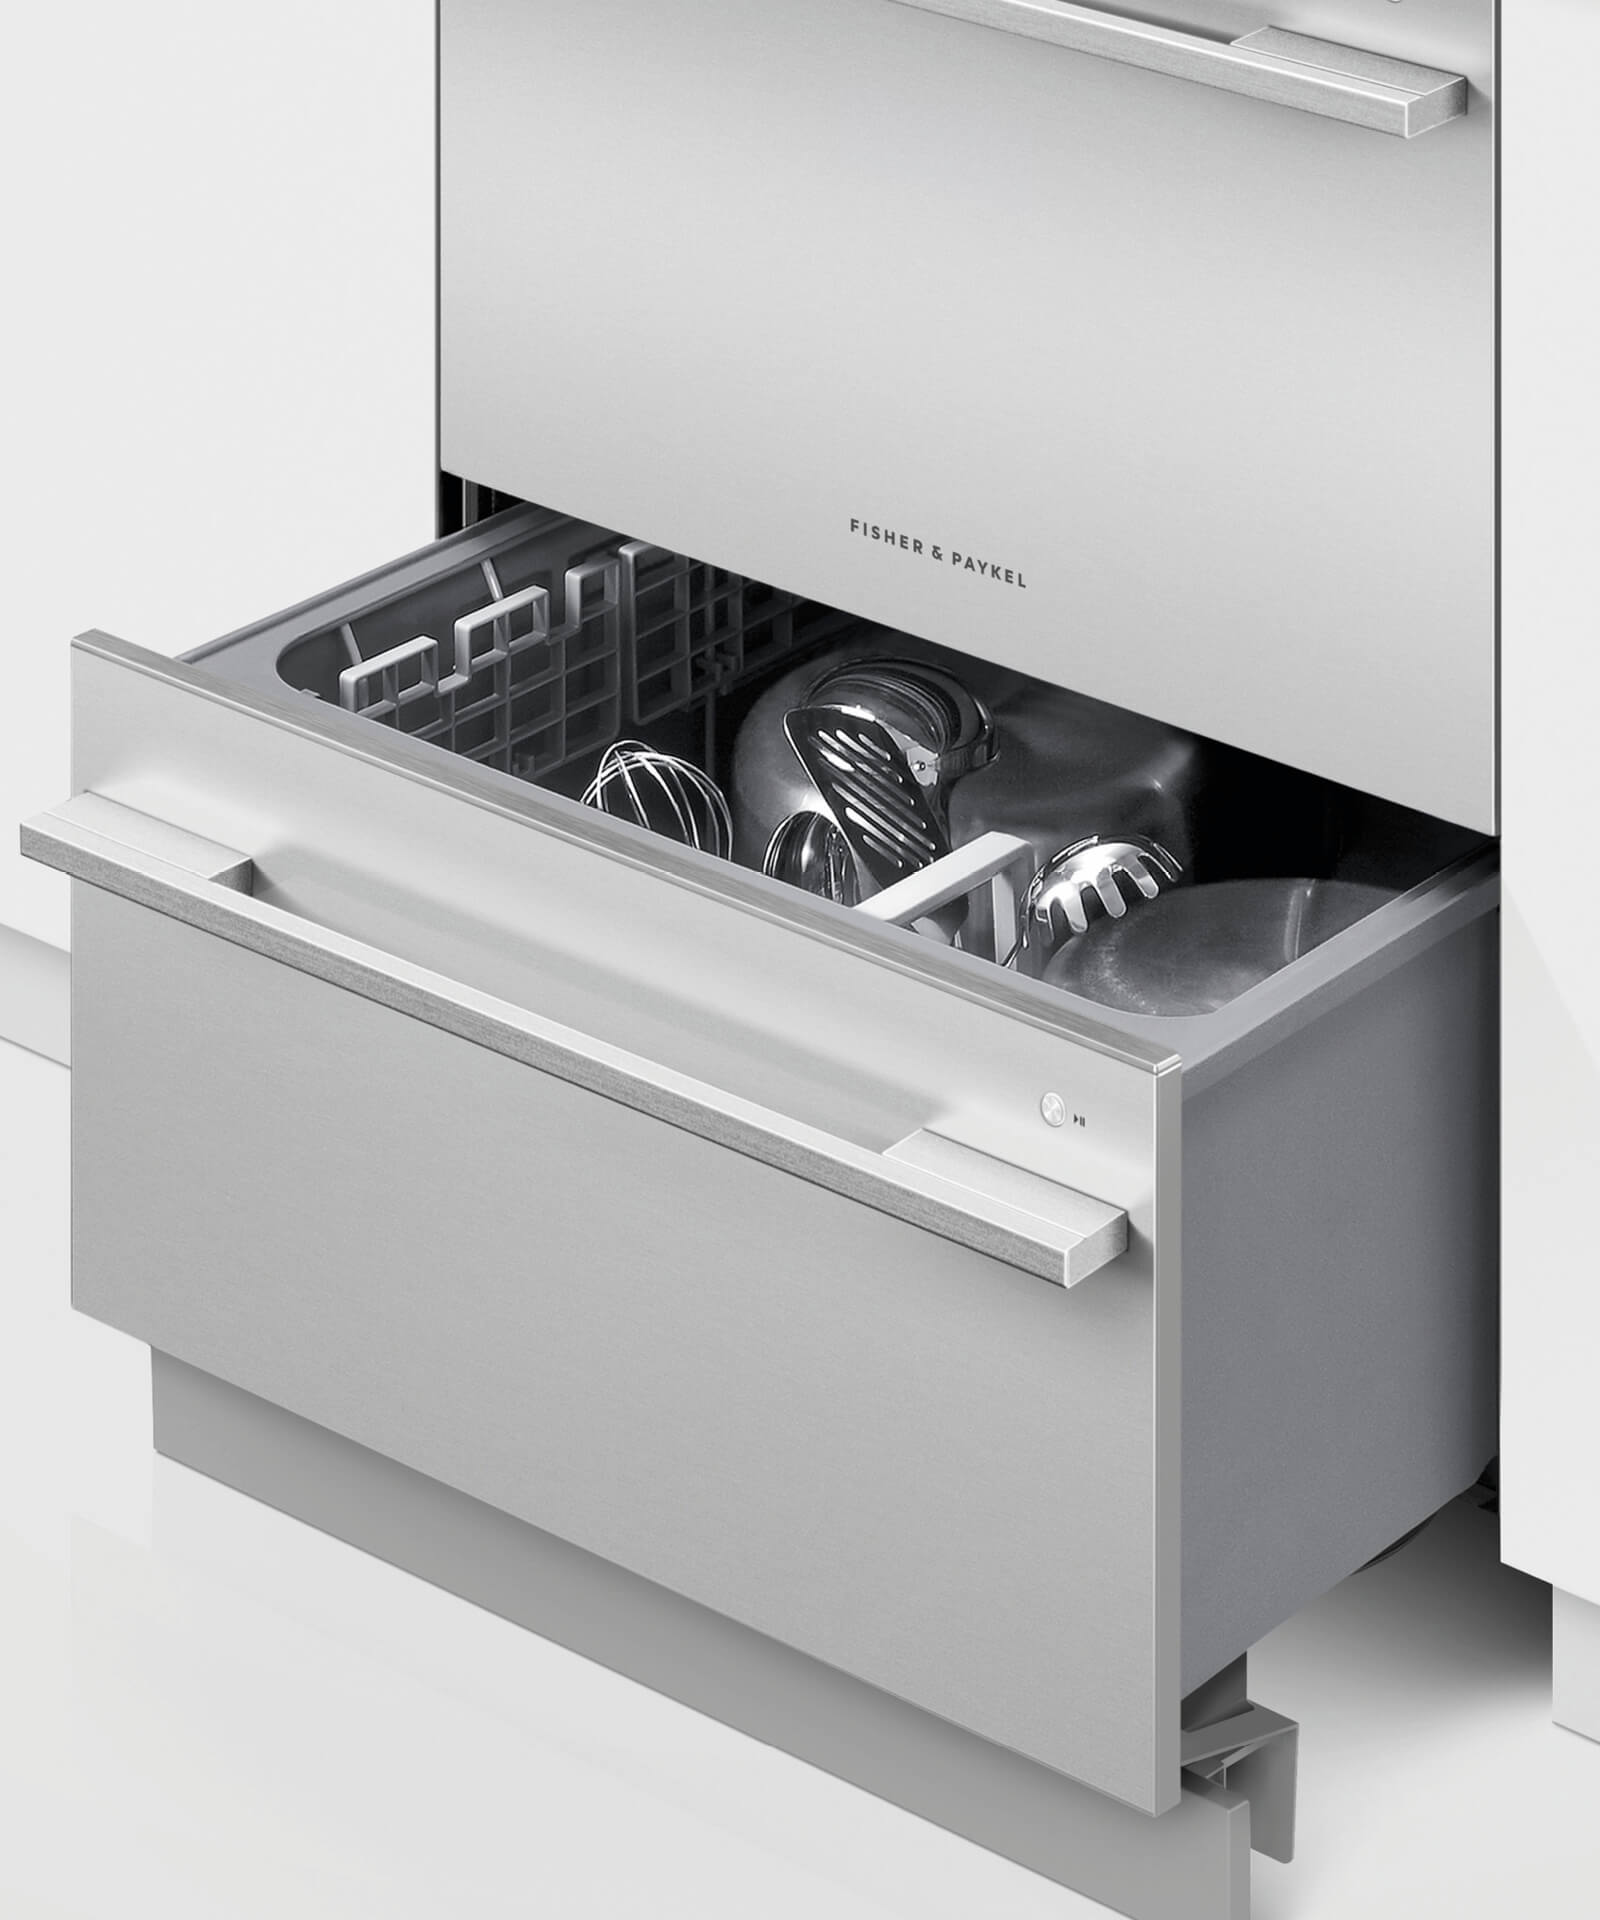 Dd60ddfx9 Double Dishdrawer Dishwasher With 14 Place